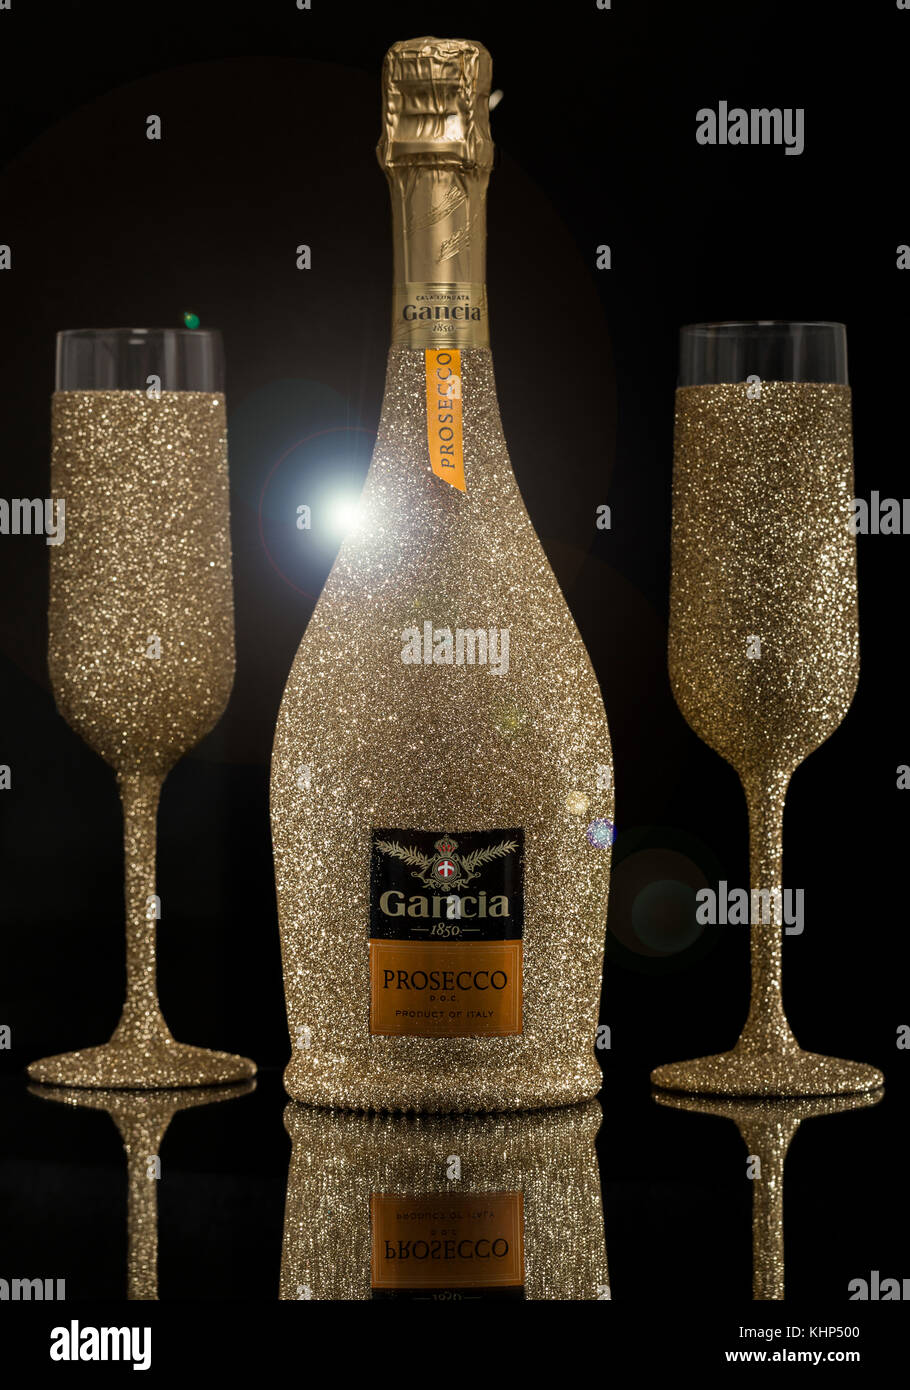 24953bb17b08 Sparkly gold glitter sprayed Prosecco bottle and champagne flute glasses  with lens flare